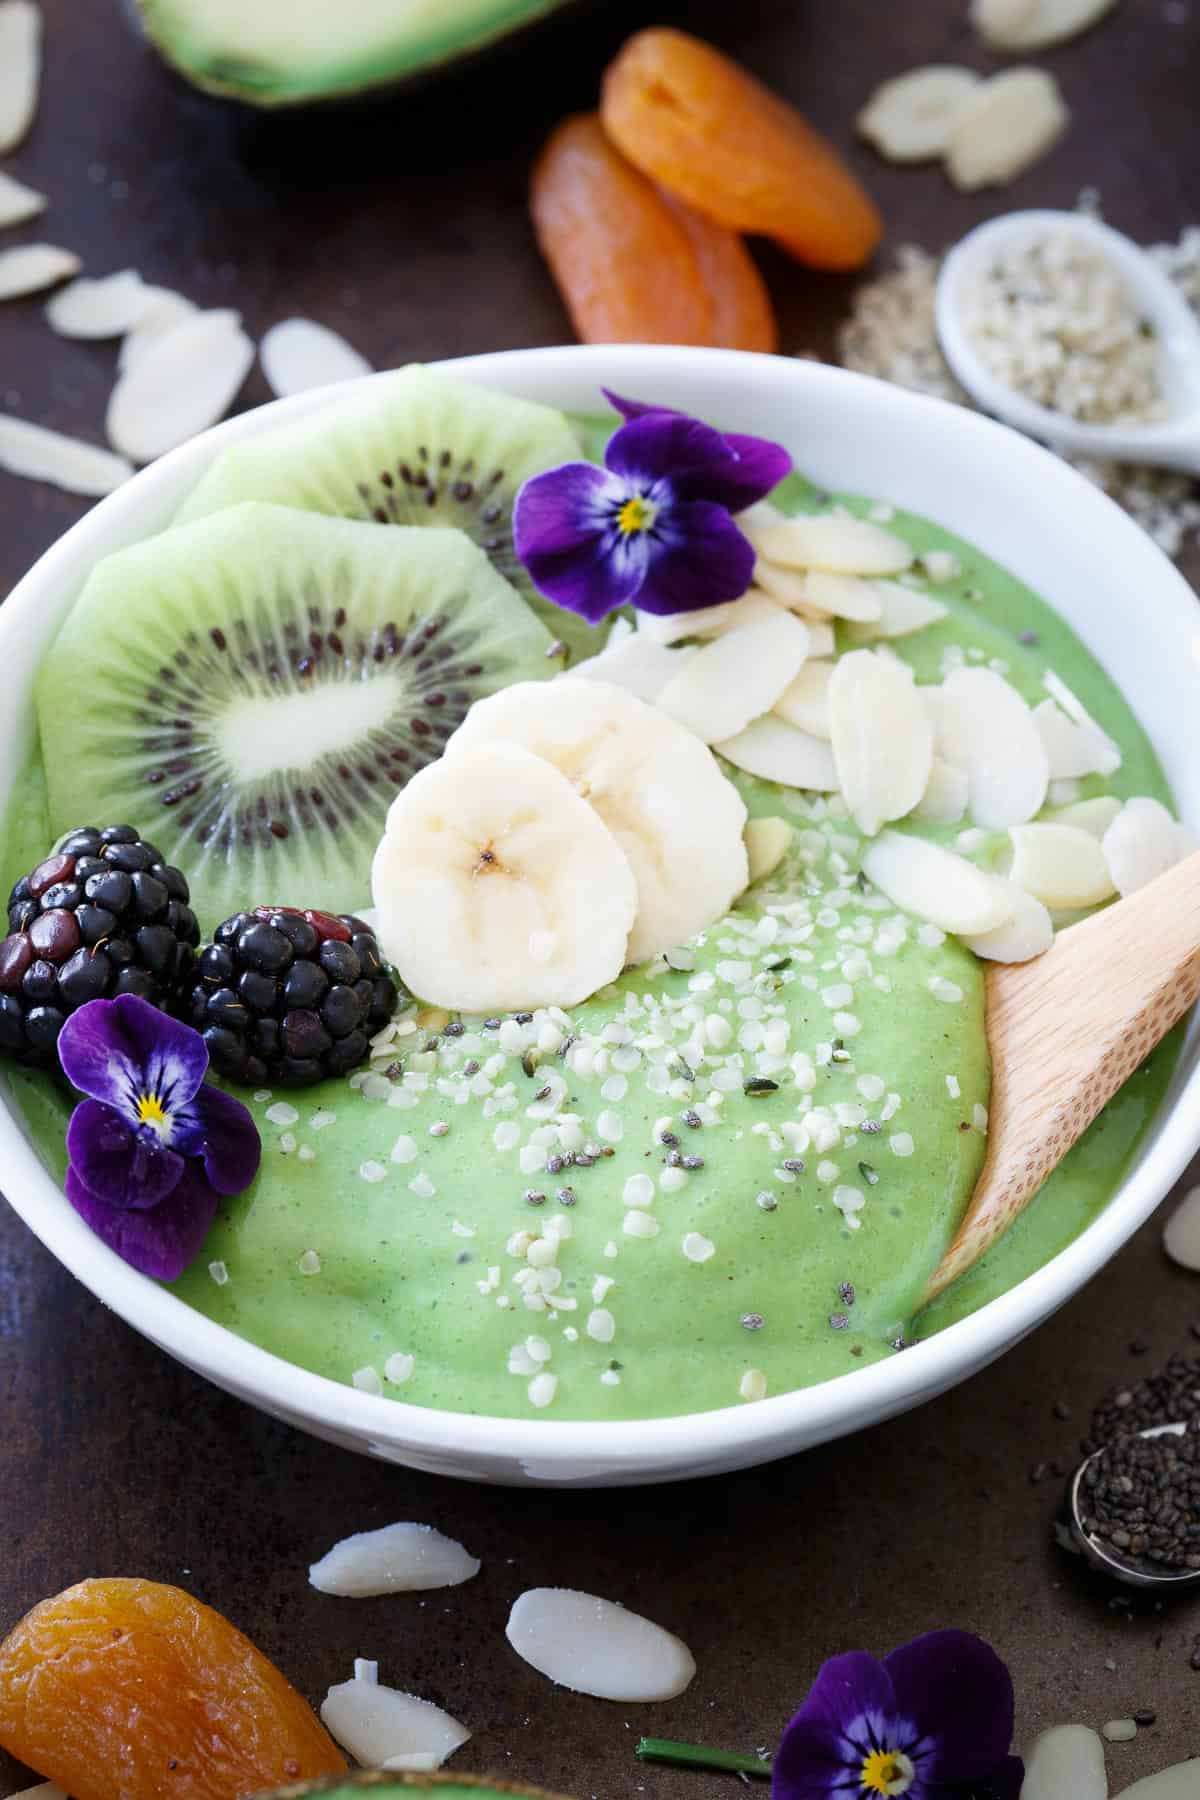 Avocado pineapple smoothie bowls are packed with superfoods and perfect for breakfast!